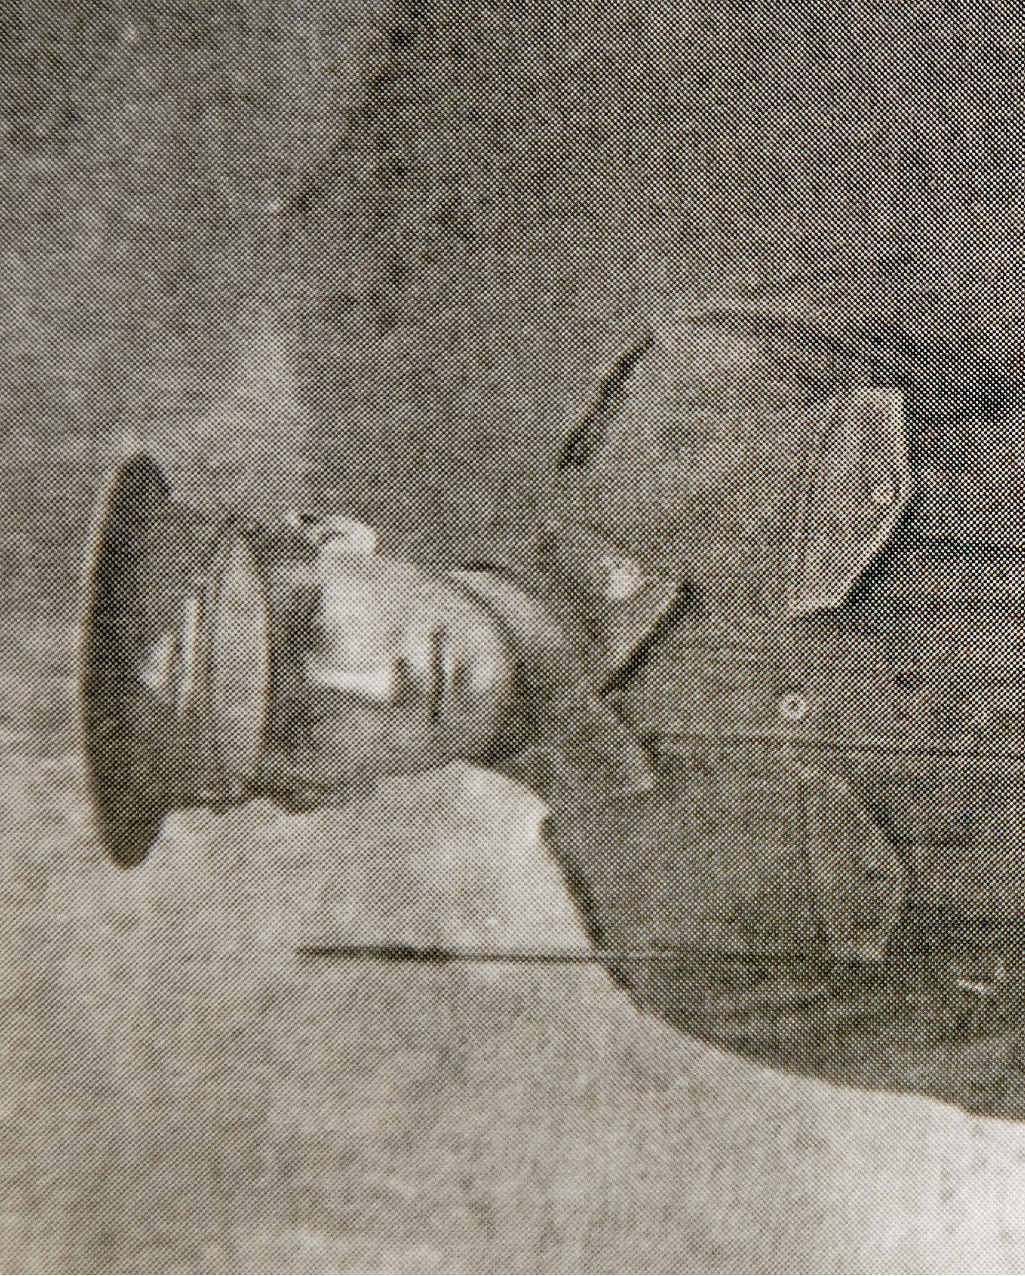 C. James Gordon Edwards was just 21 when he died on the Western Front in France while attacking the German trenches at Villers-Bretonneux. CONTRIBUTED